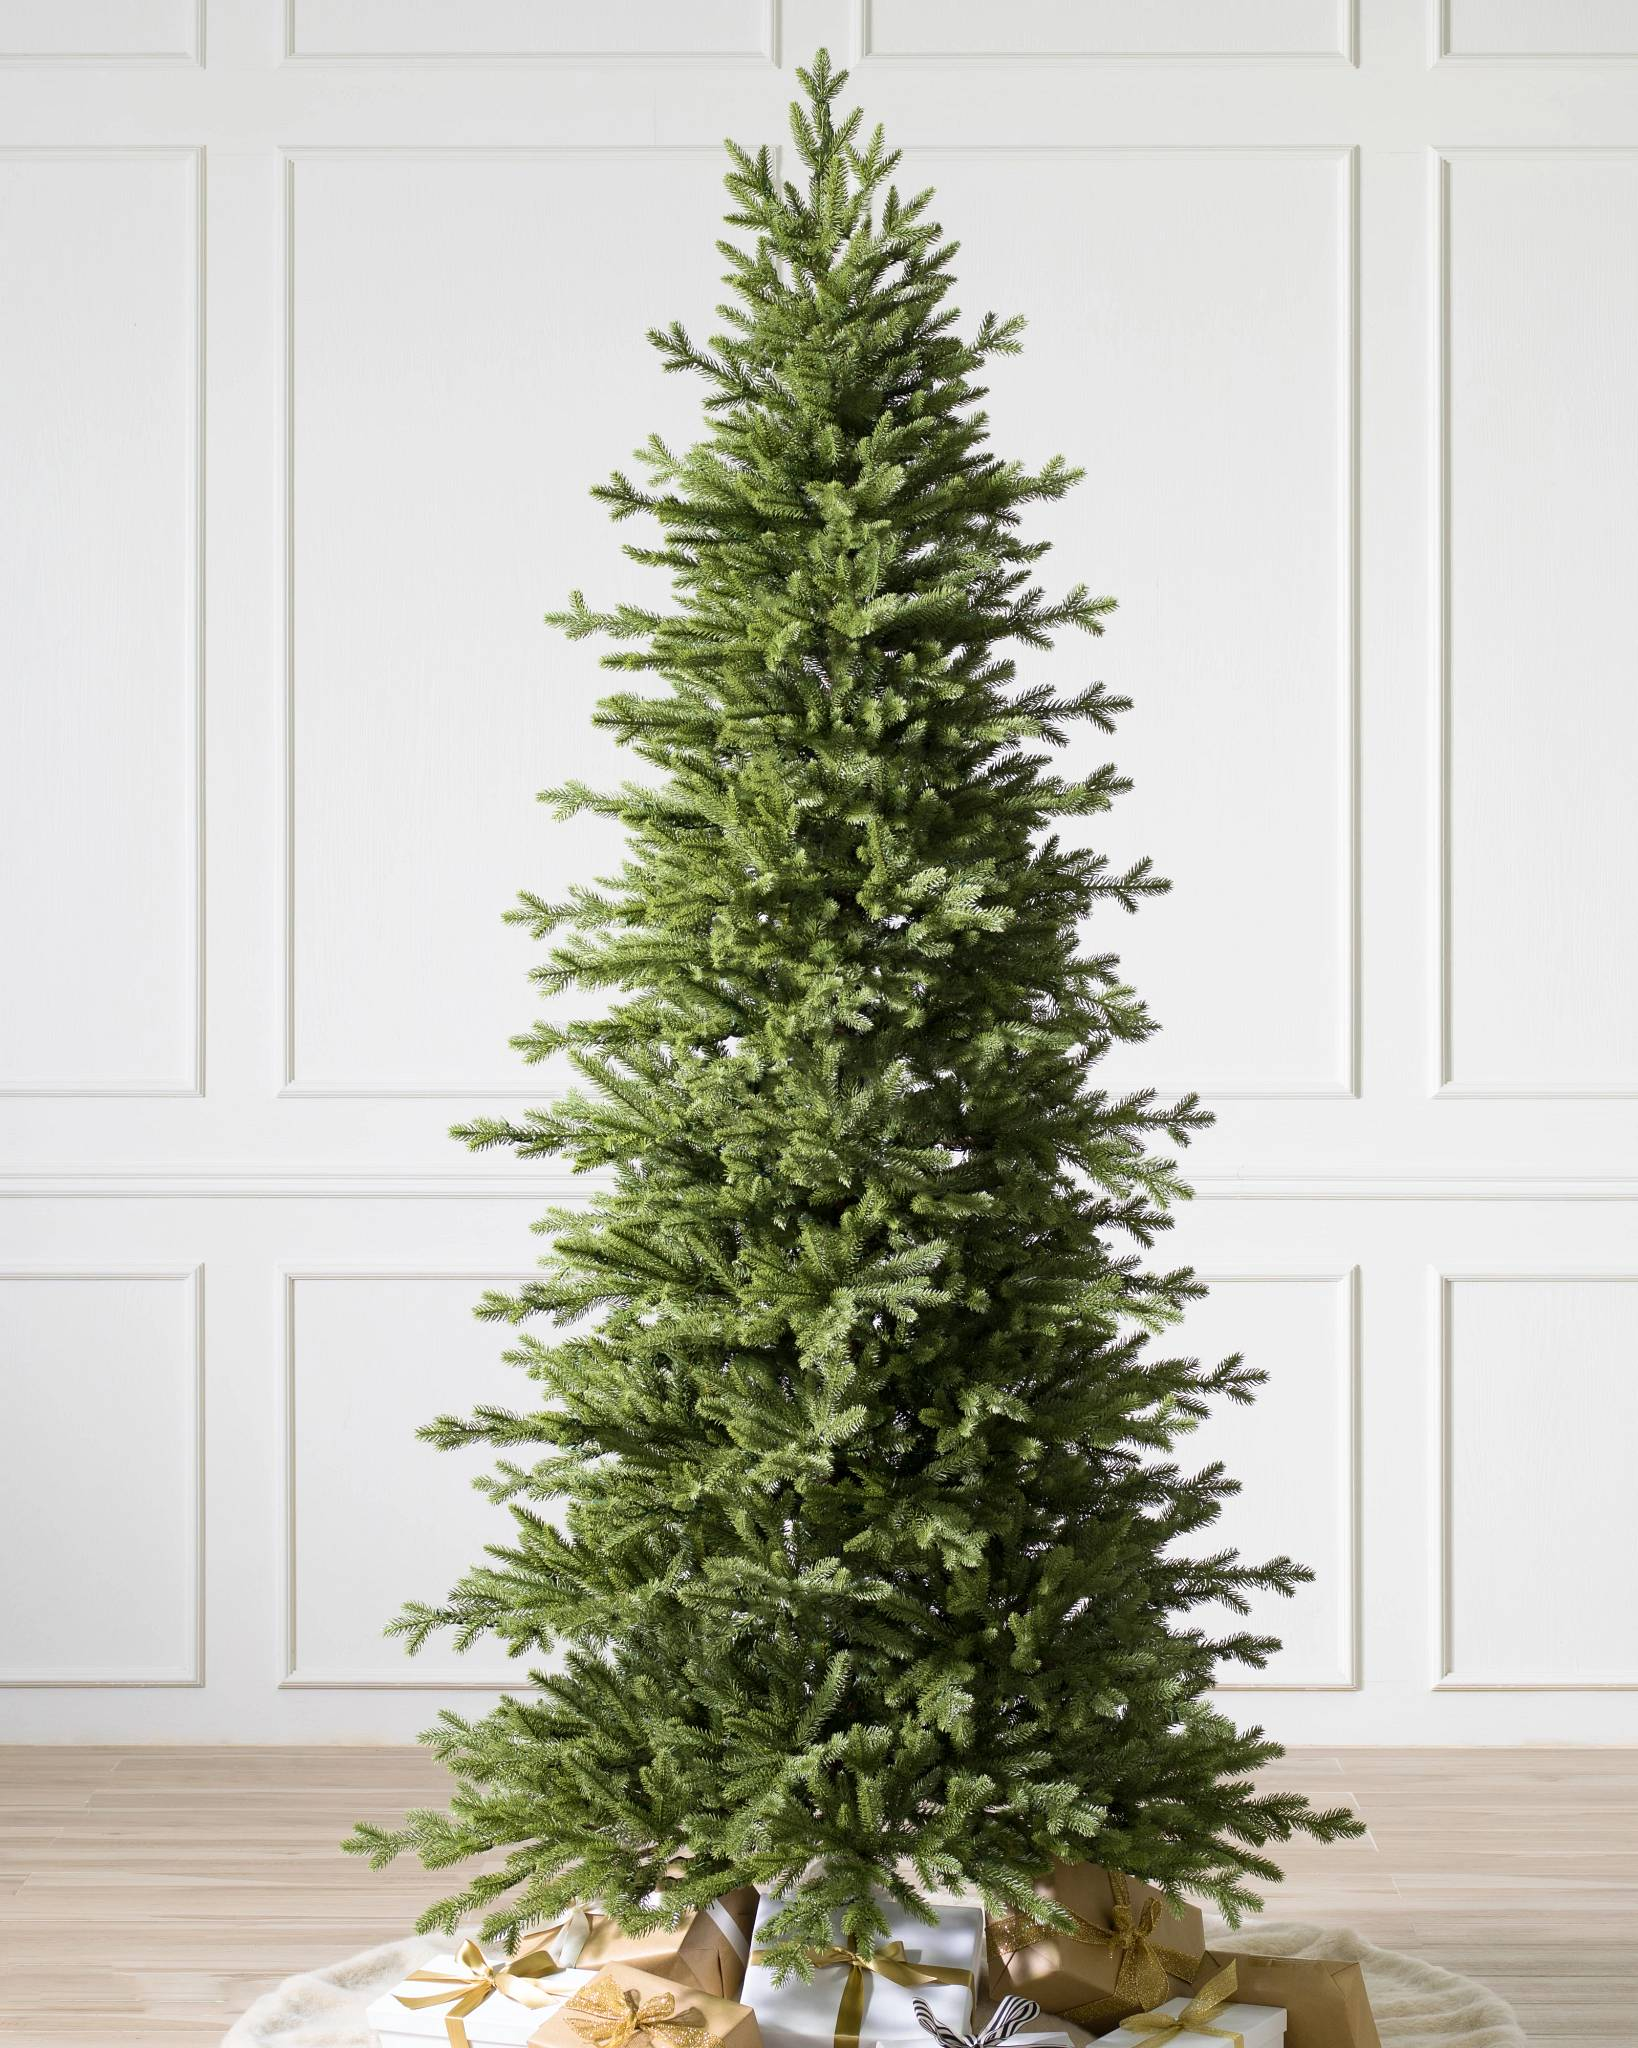 red spruce slim tree child 1 - Christmas Tree With White Lights And Red Decorations